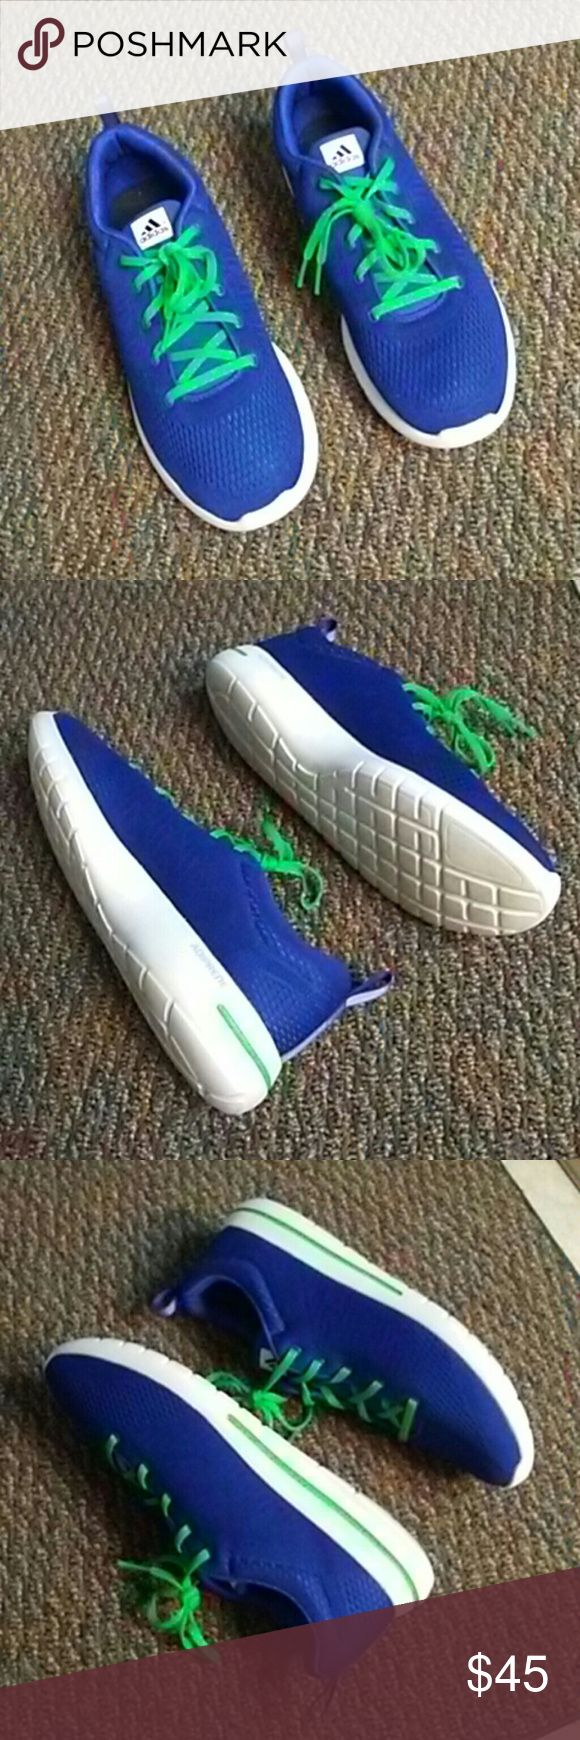 Adidas Running Shoes + Adiprene 2015 MEN's Gently Used Adidas cobalt blue and neon green and white in Excellent Condition still looks NEW.. adidas Shoes Athletic Shoes